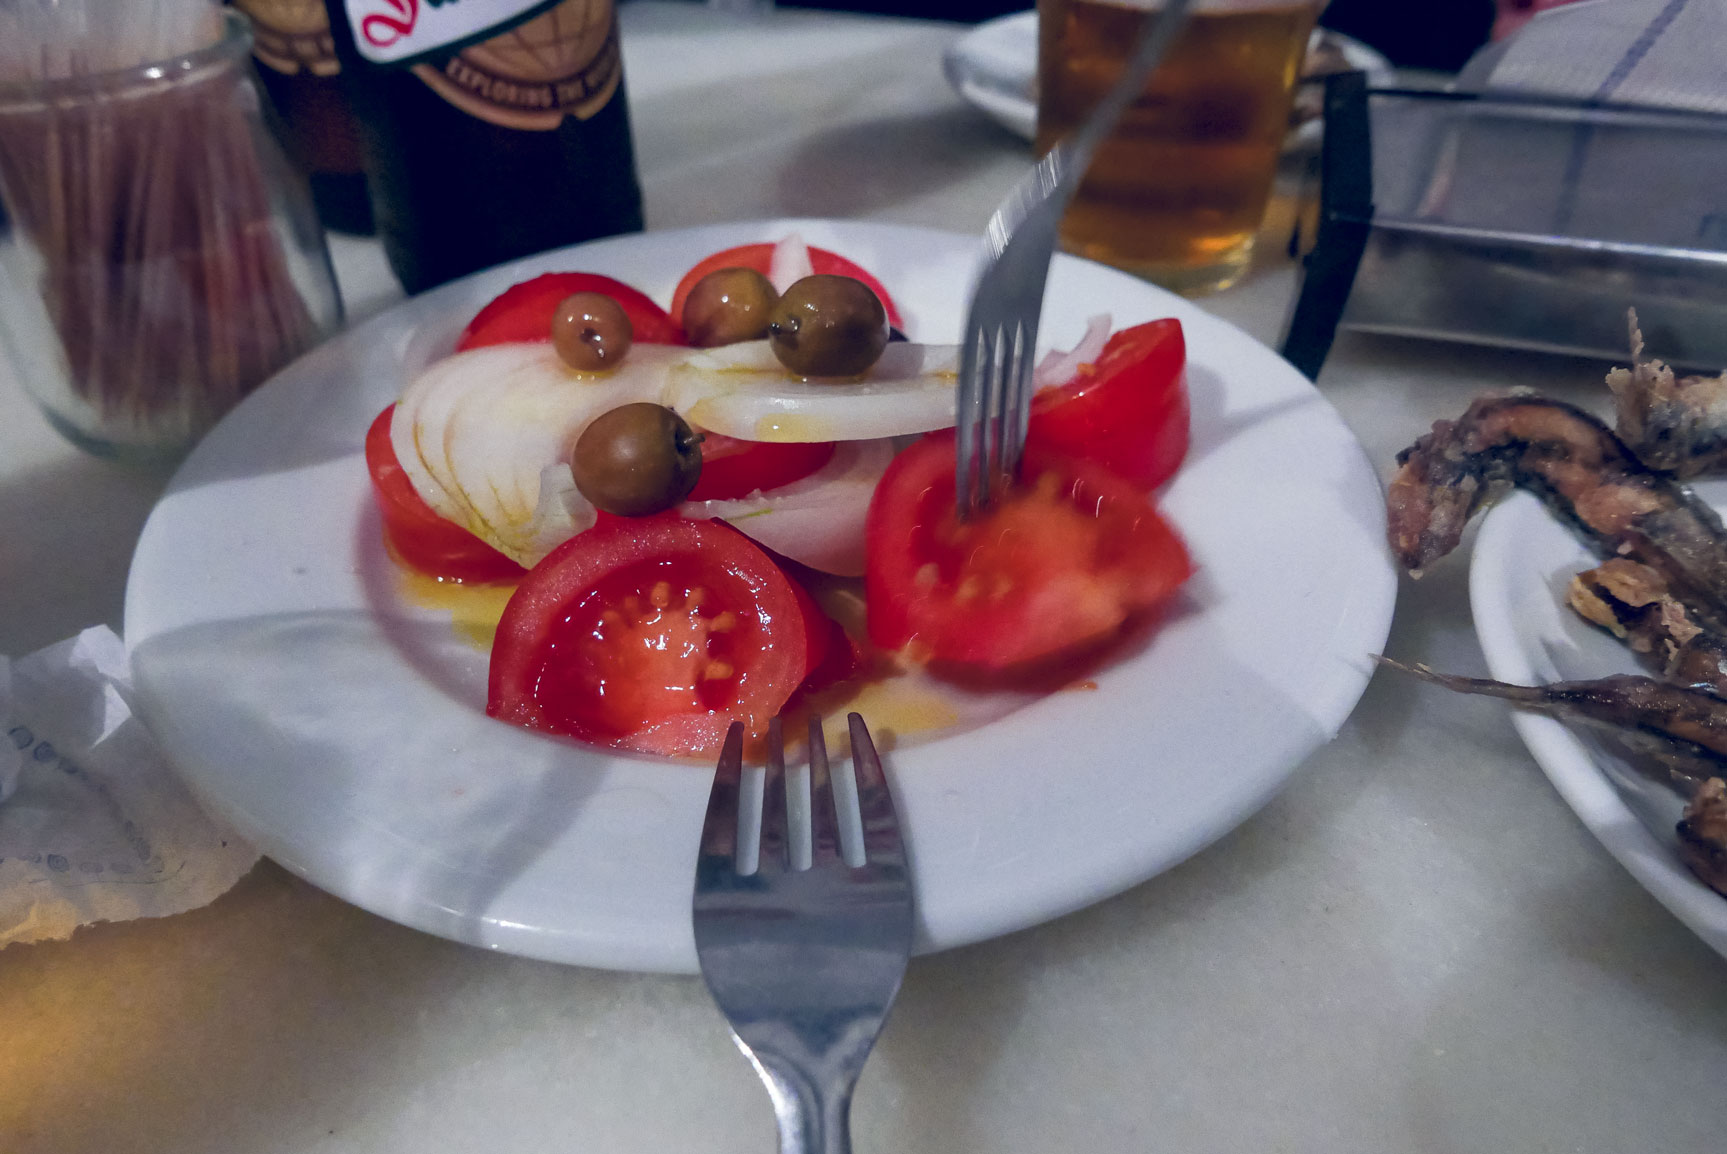 Spain Barcelona Tapas bar la plata tomatoes